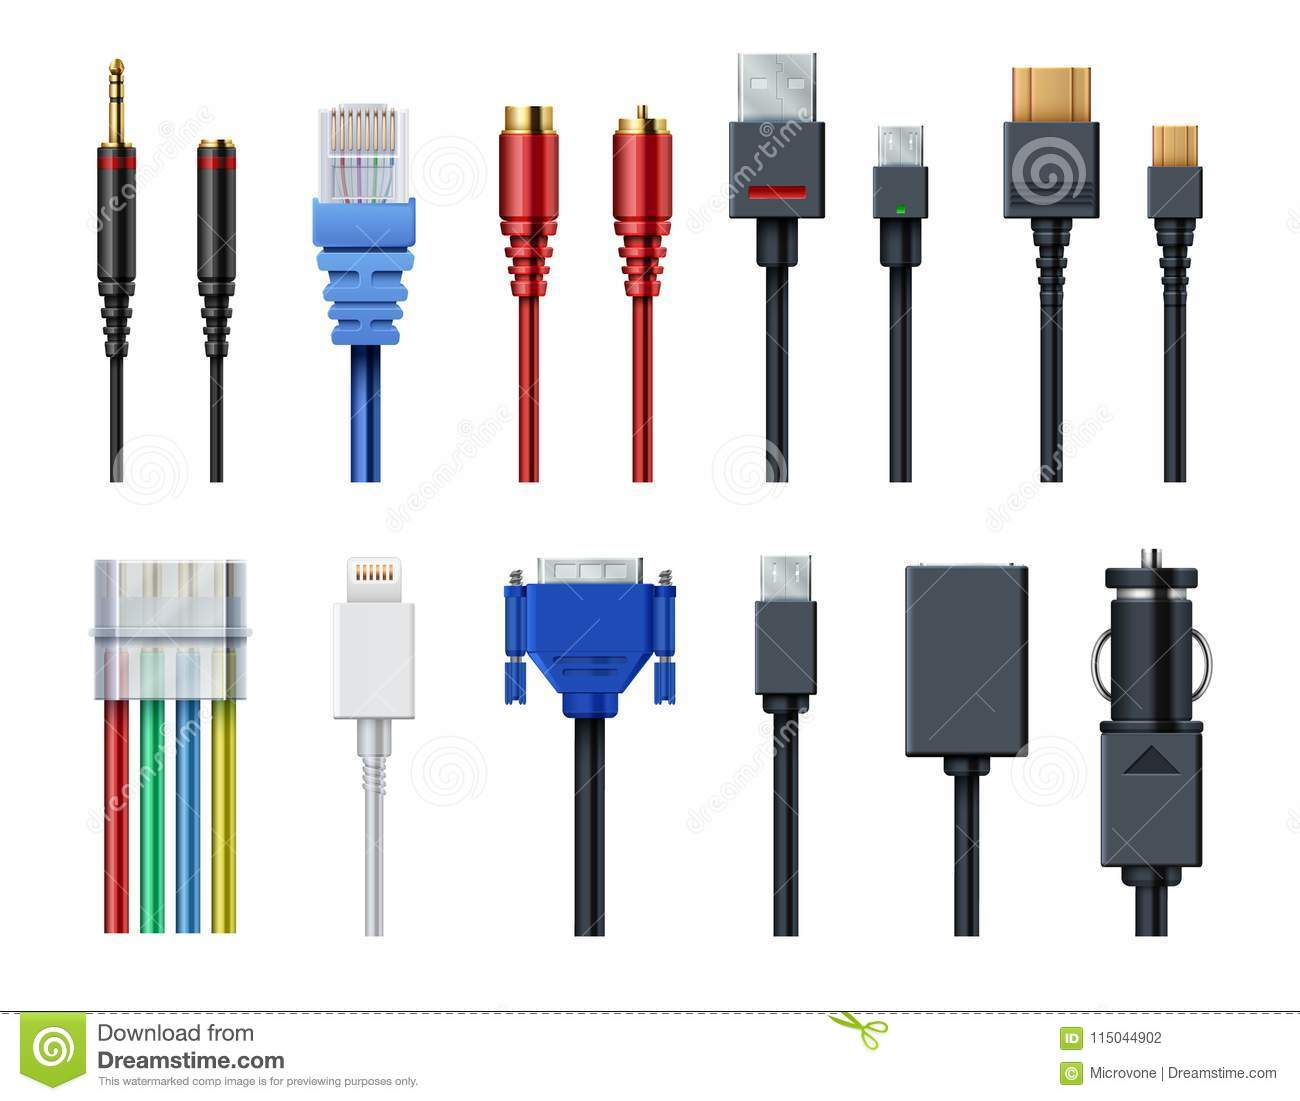 Cable wire computer video, audio, usb, hdmi, network and electric conectors and plugs vector set isolated